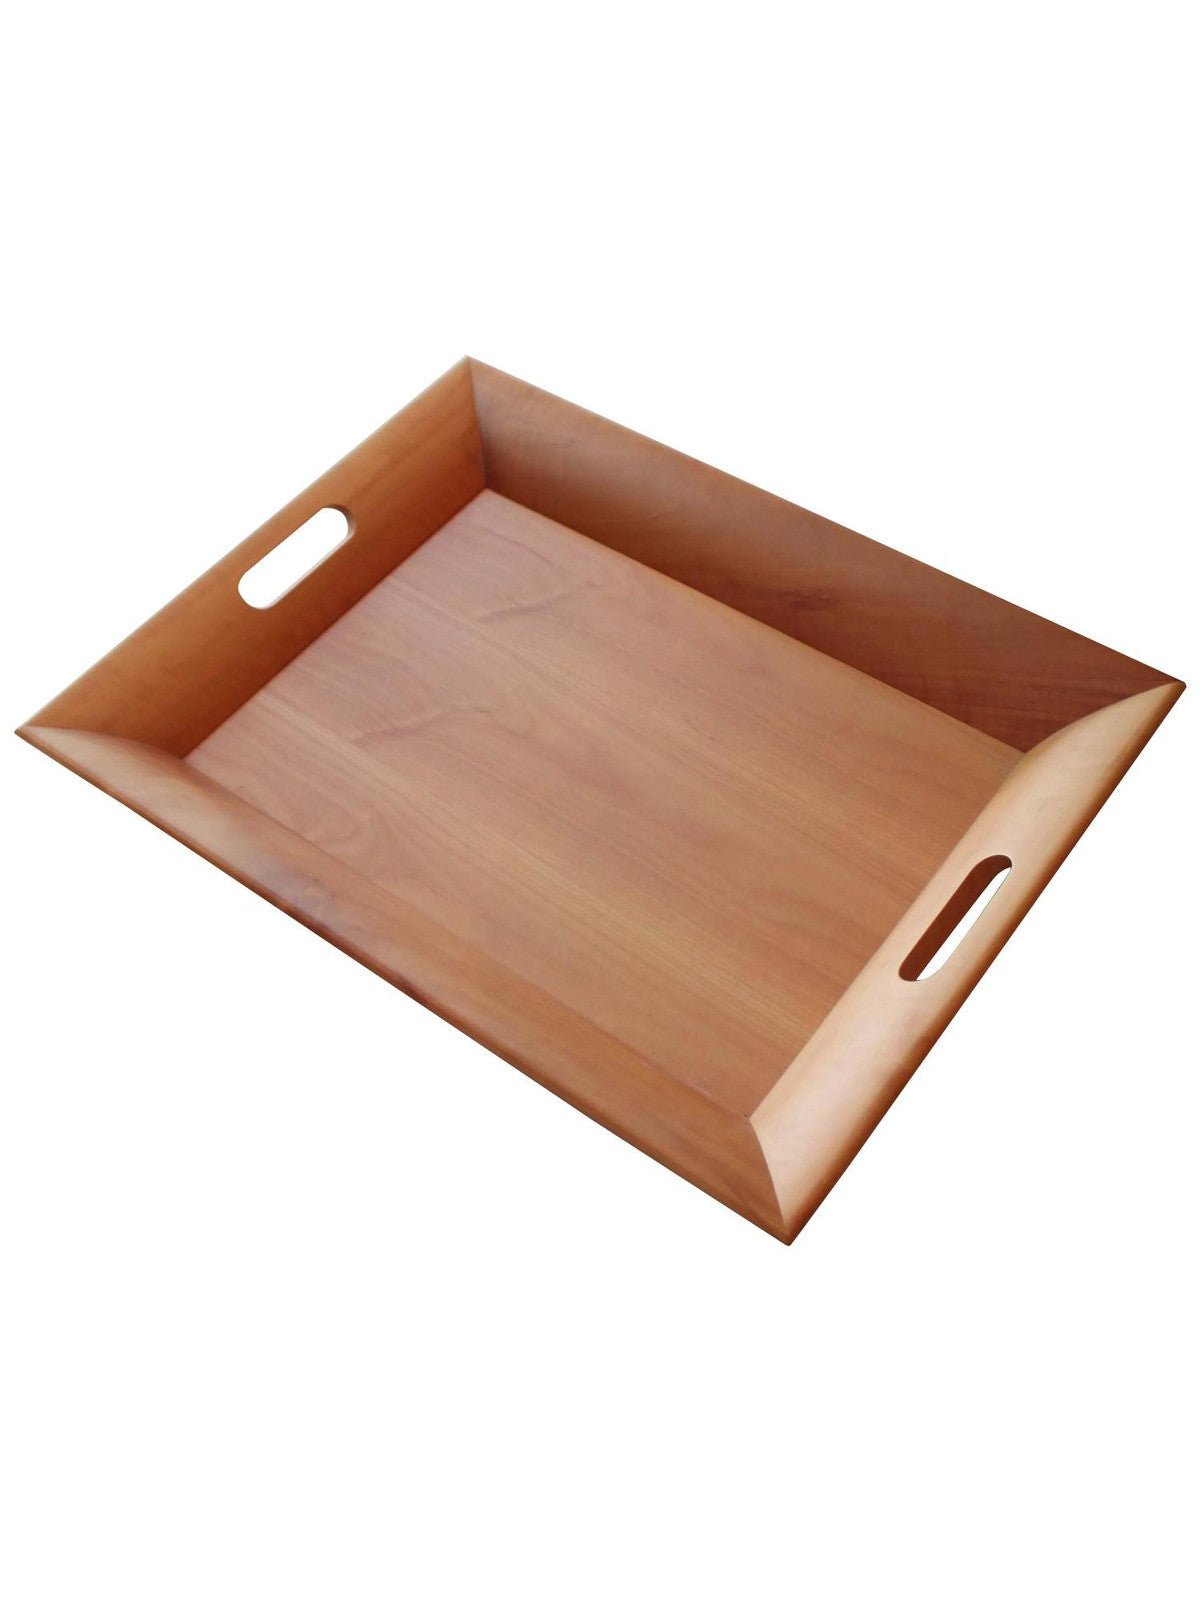 Hermès Fruitwood Serving Tray